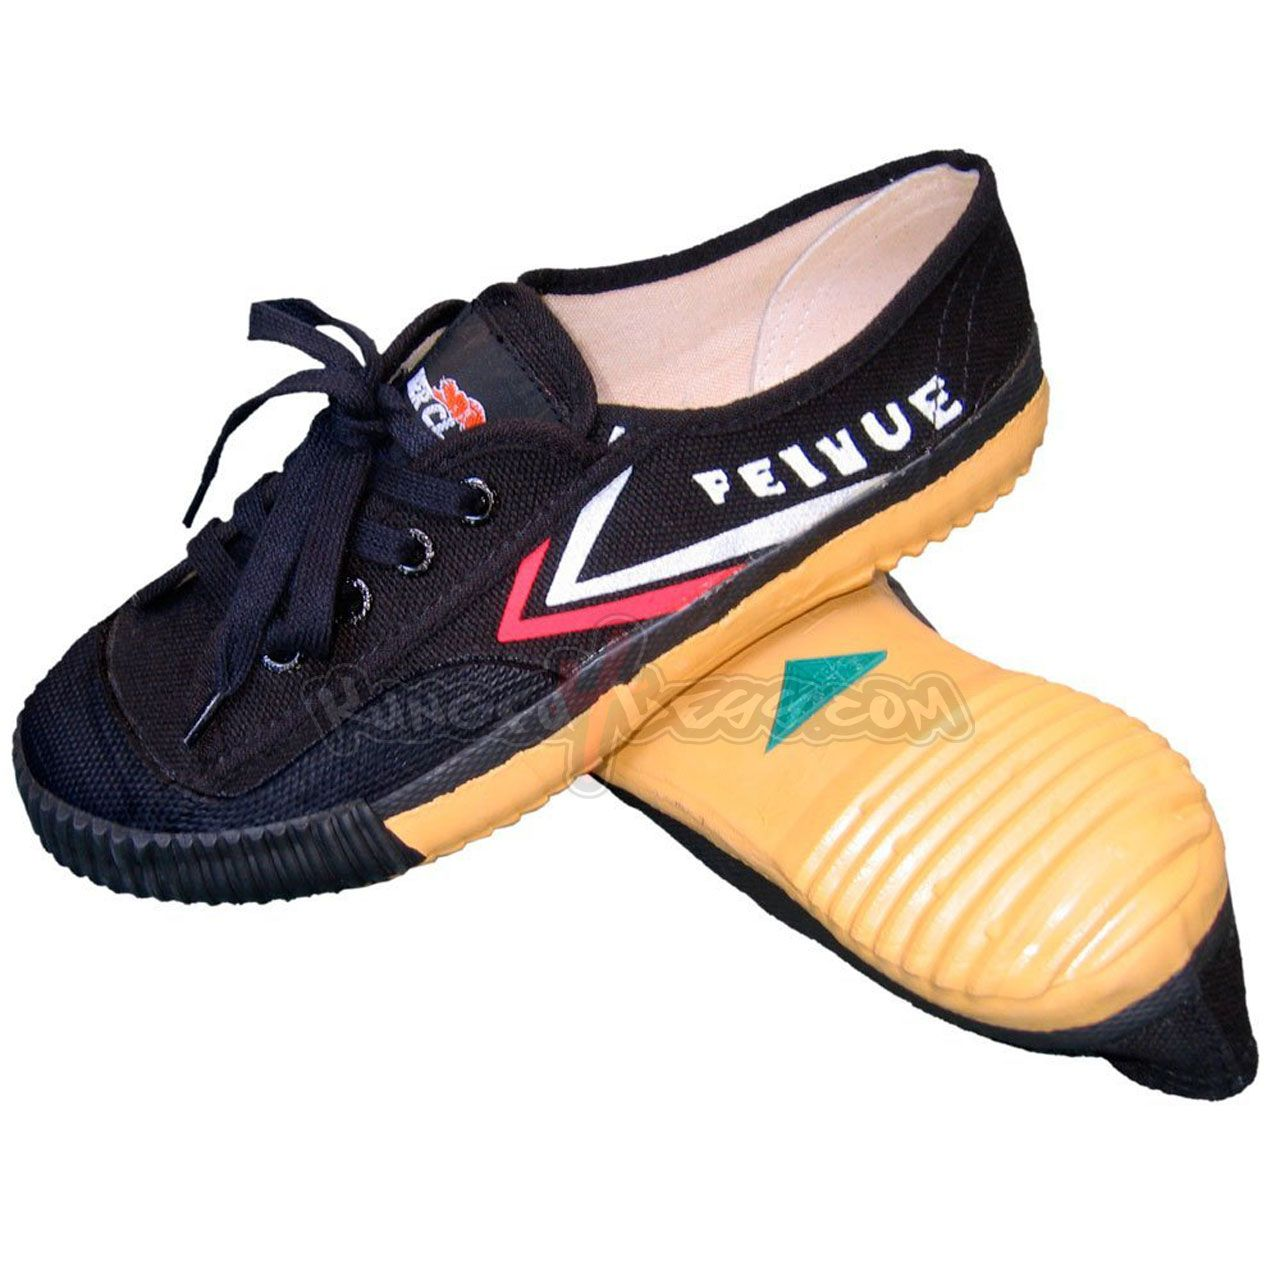 f4ad09a8b FEIYUE MARTIAL ARTS SHOES BLACK on sale only $19.95